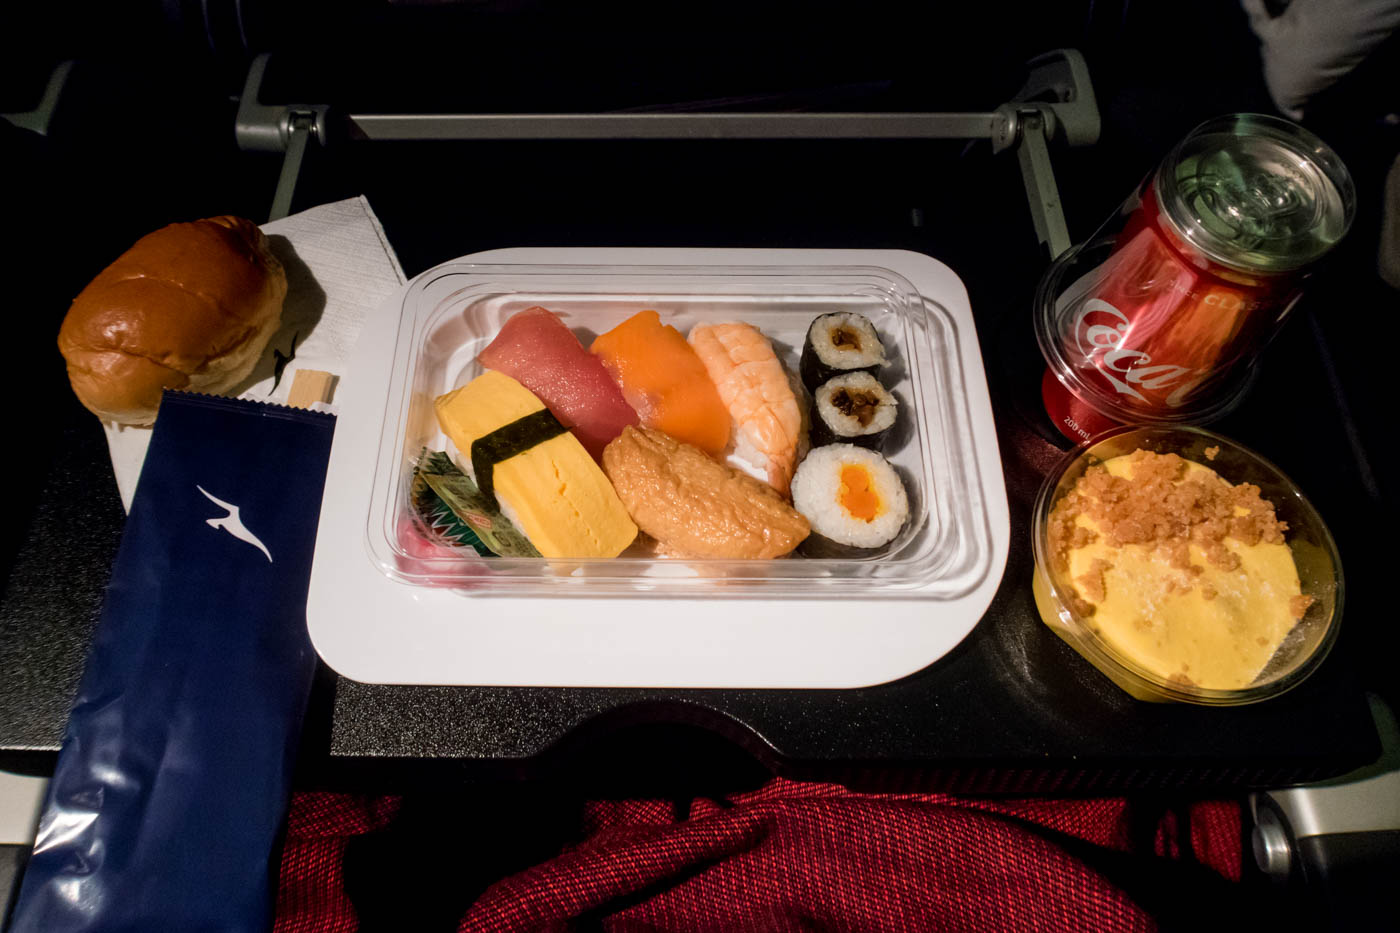 Qantas Long-Haul Economy Class Meal